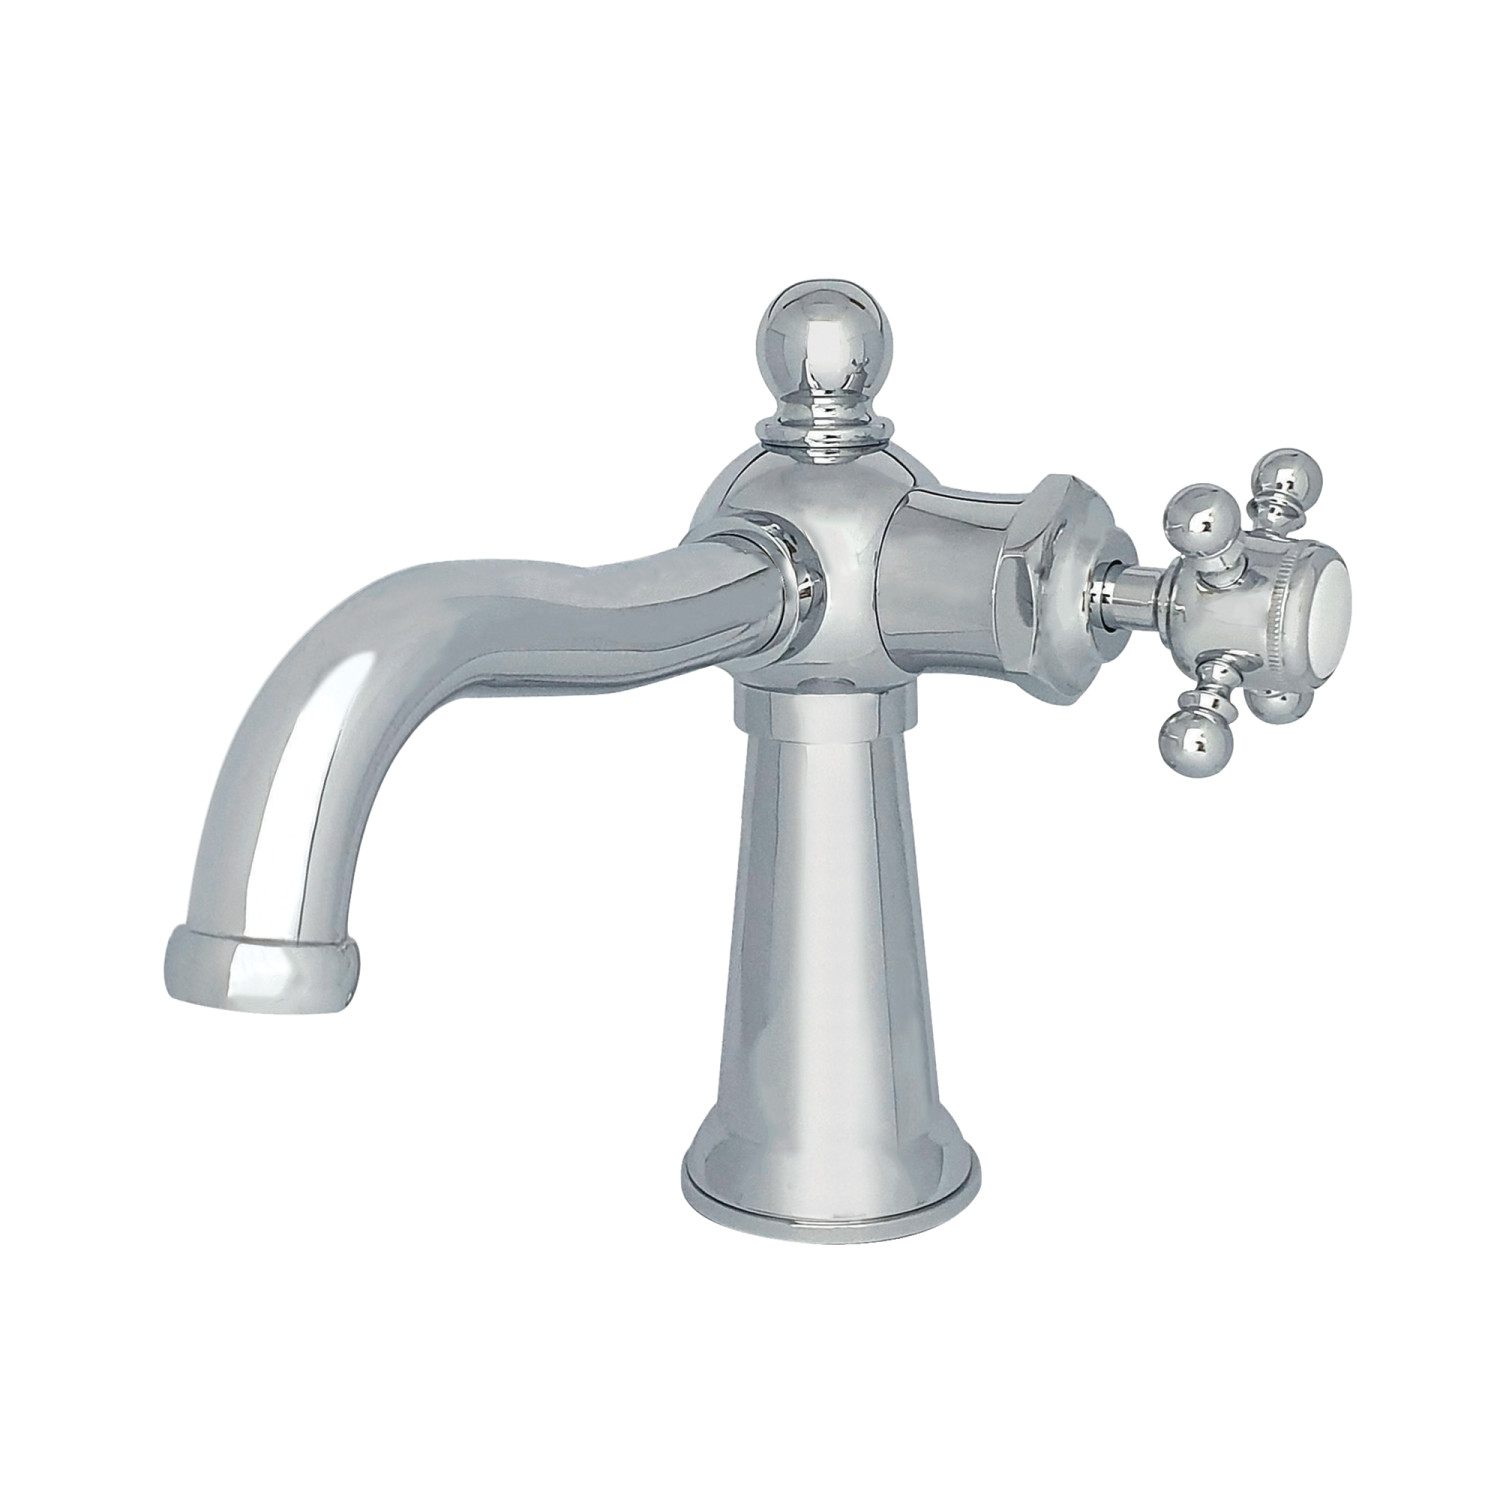 Single-Handle 1-Hole Deck Mount Bathroom Faucet with Push Pop-Up in Polished Chrome